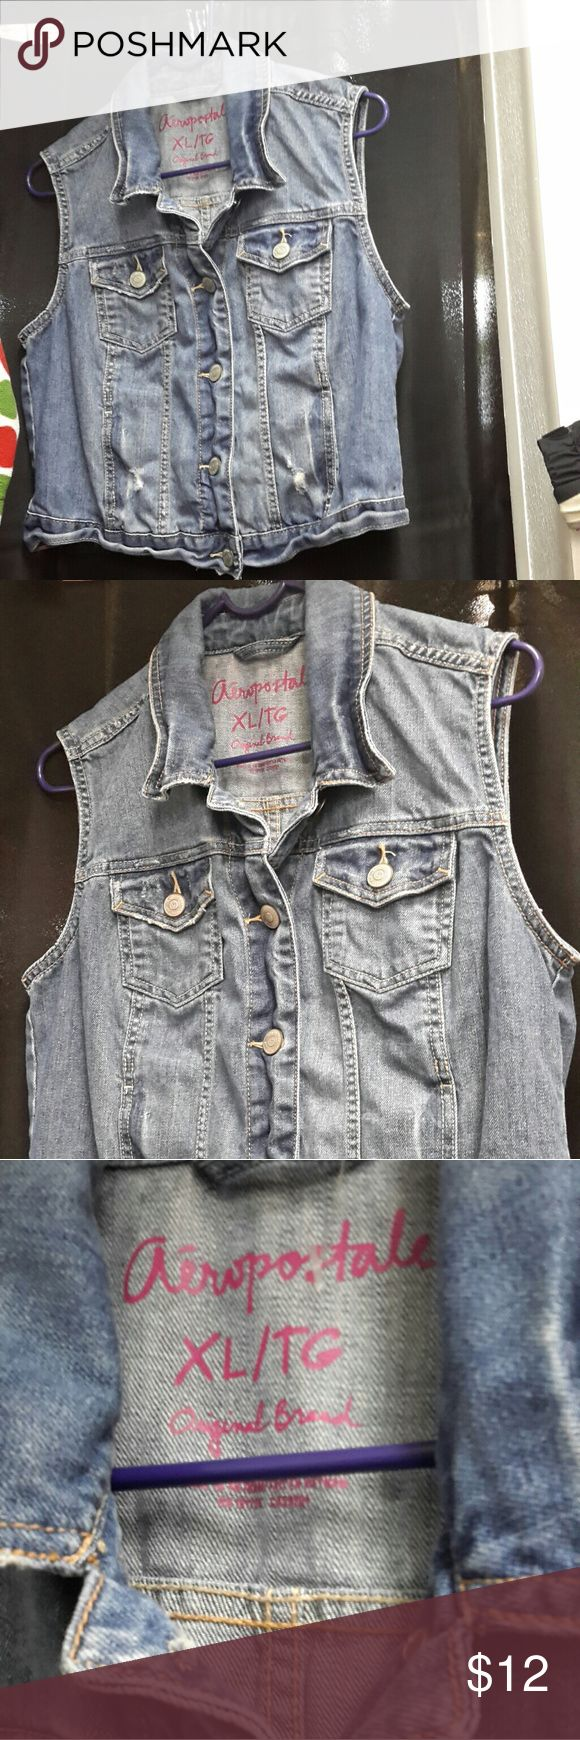 Aeropostale sleeveless Jean jacket Aeropostale light denim sleeveless jacket with two front chest pockets. Cute to wear with shorts, jeans, or a summer dress. Size XL but looks like it may run small as a large if you wore it button up Aeropostale Jackets & Coats Jean Jackets